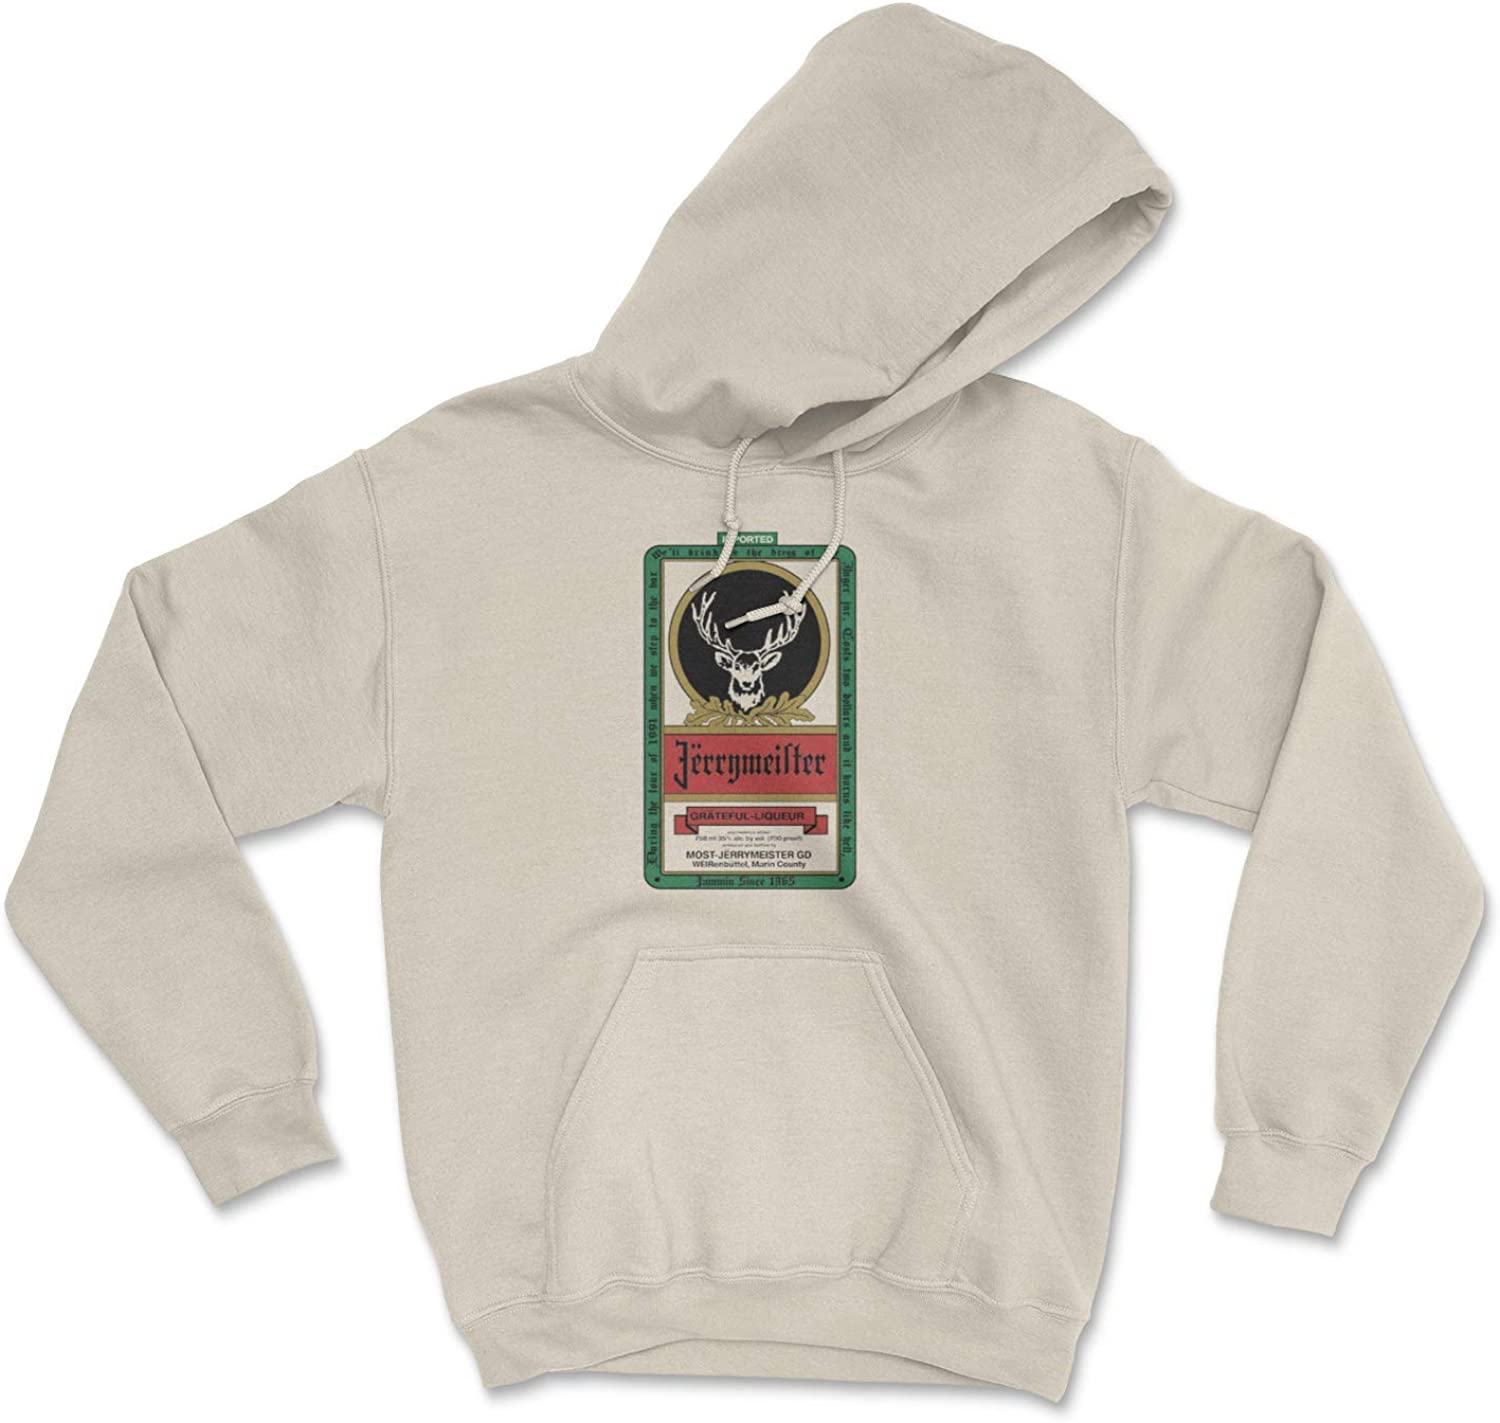 ZJ Deisgns Jerry Free shipping on posting reviews Garcia Inspired Raleigh Mall jerrymeister Classic Hoodie Dea